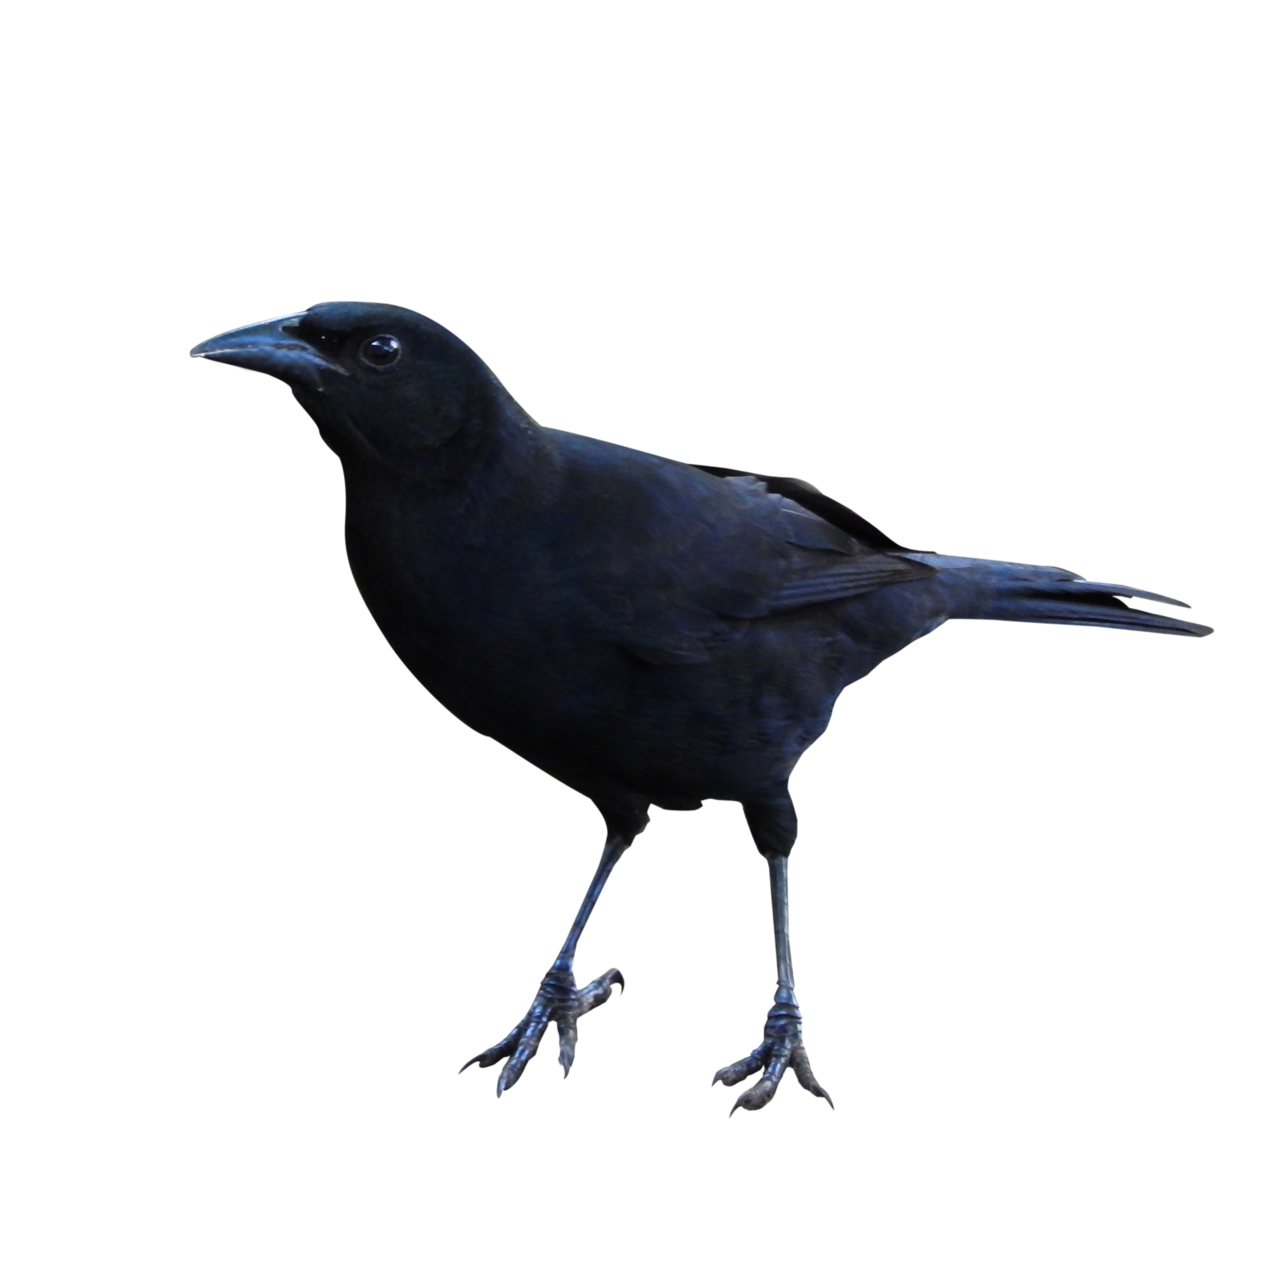 Raven PNG - 4080